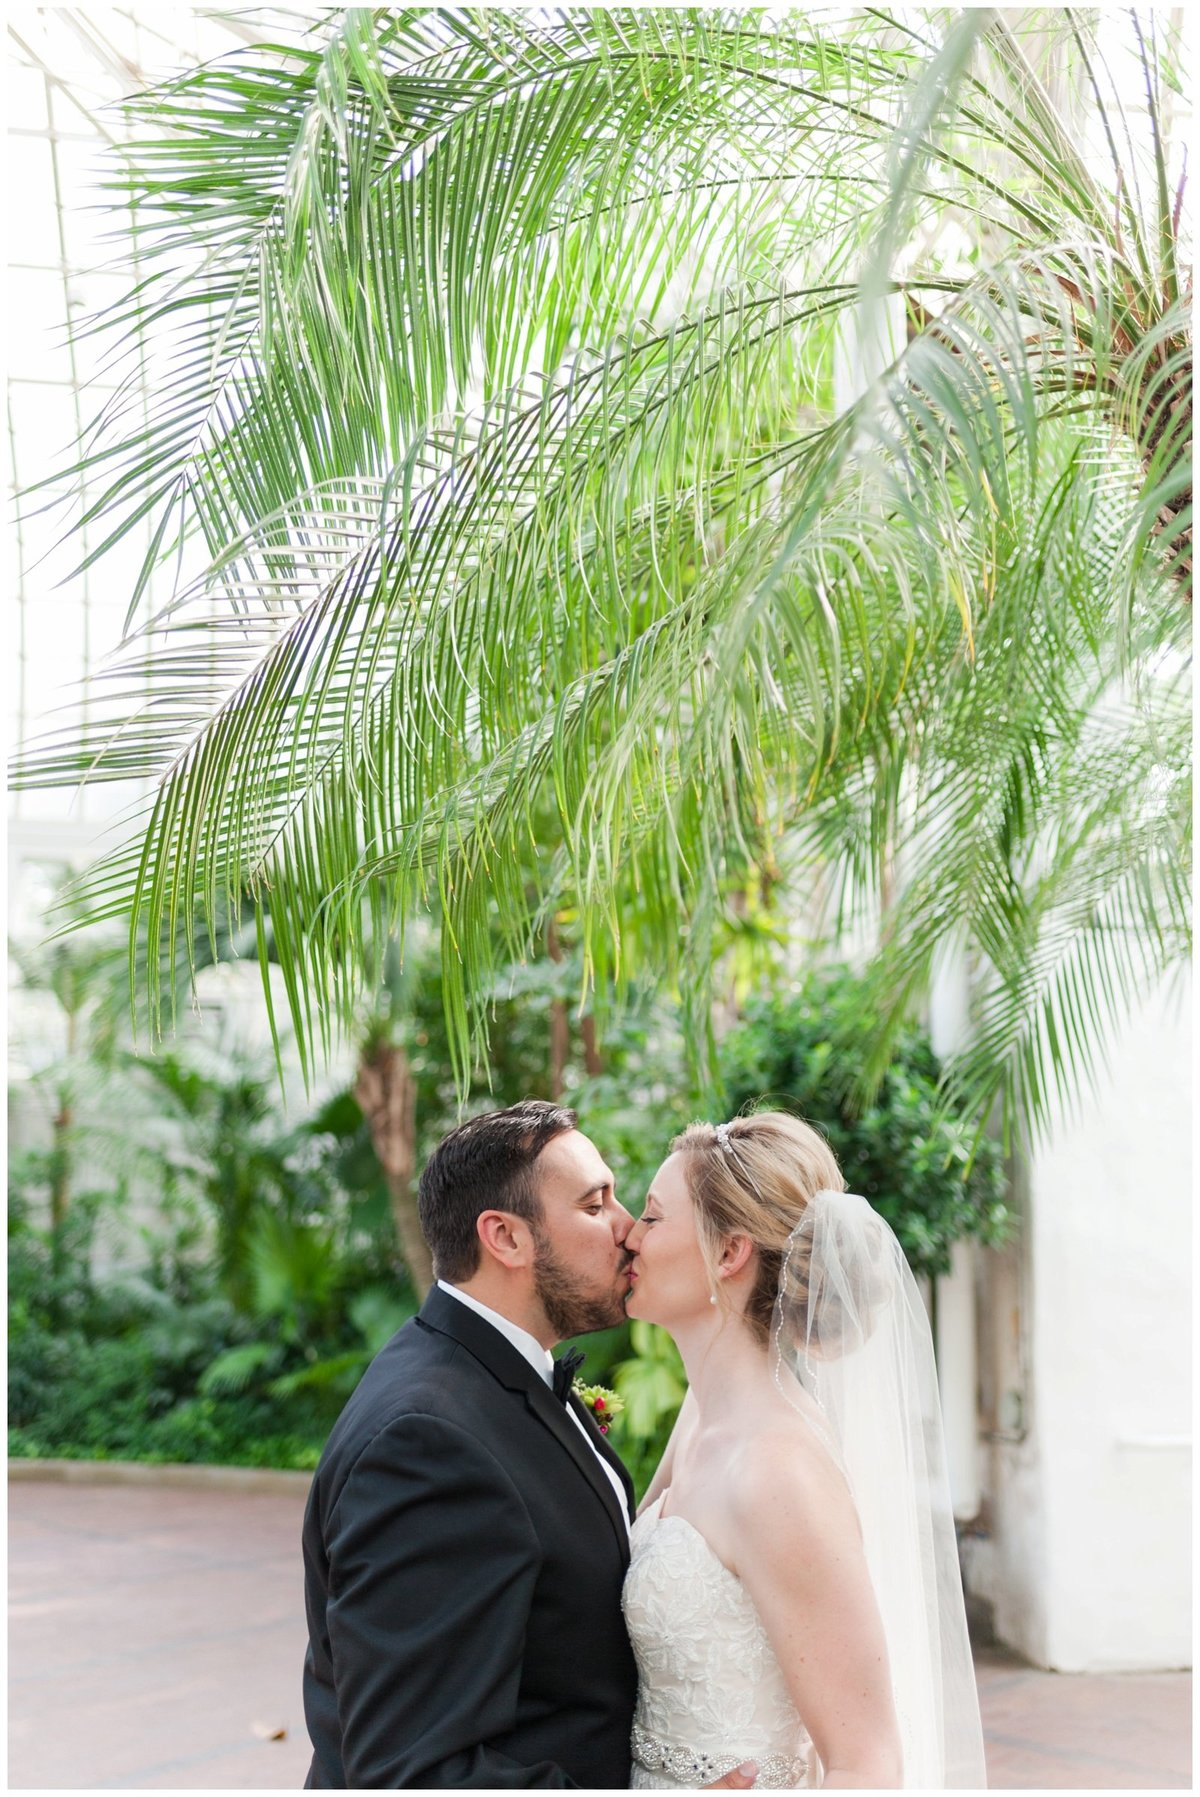 Franklin Park Conservatory Wedding The Palm House Bridal Garden Grove_0037